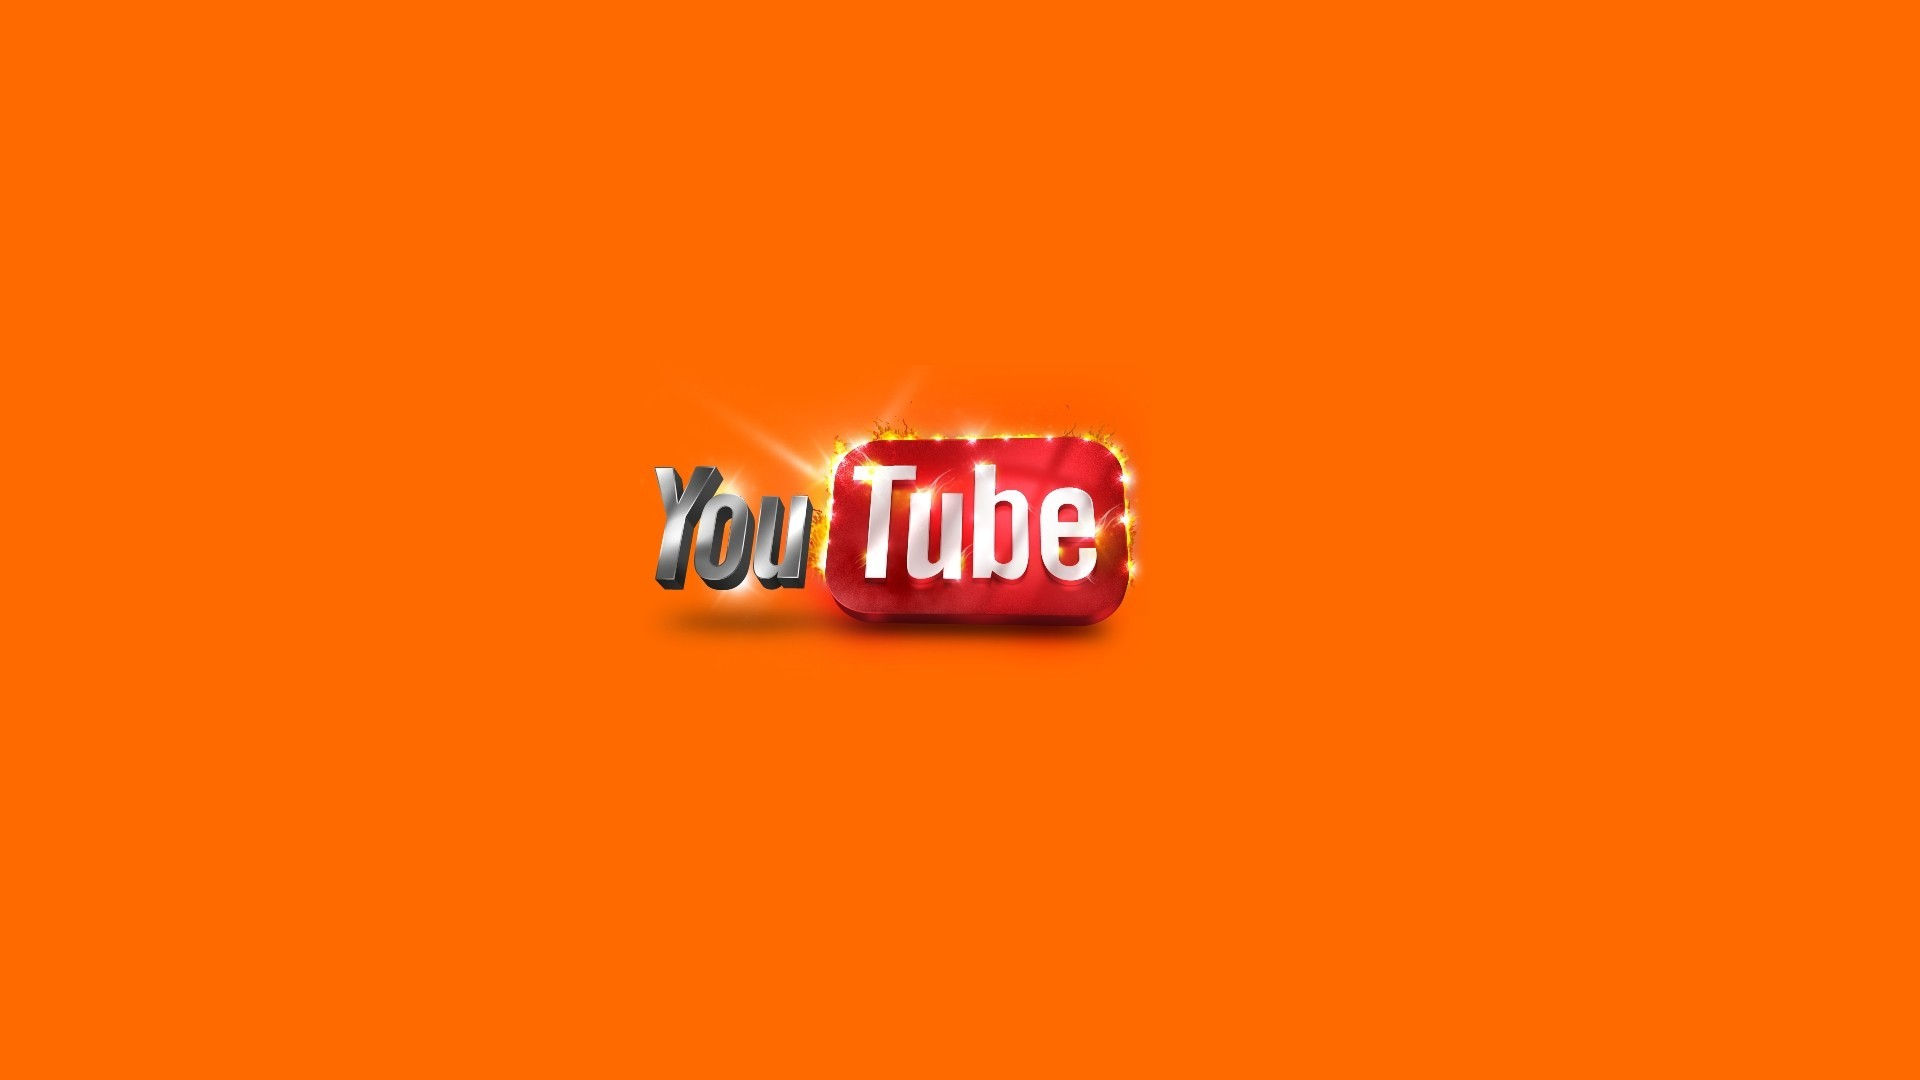 Youtube background Wallpaper For Resolution 2560×1440 Download